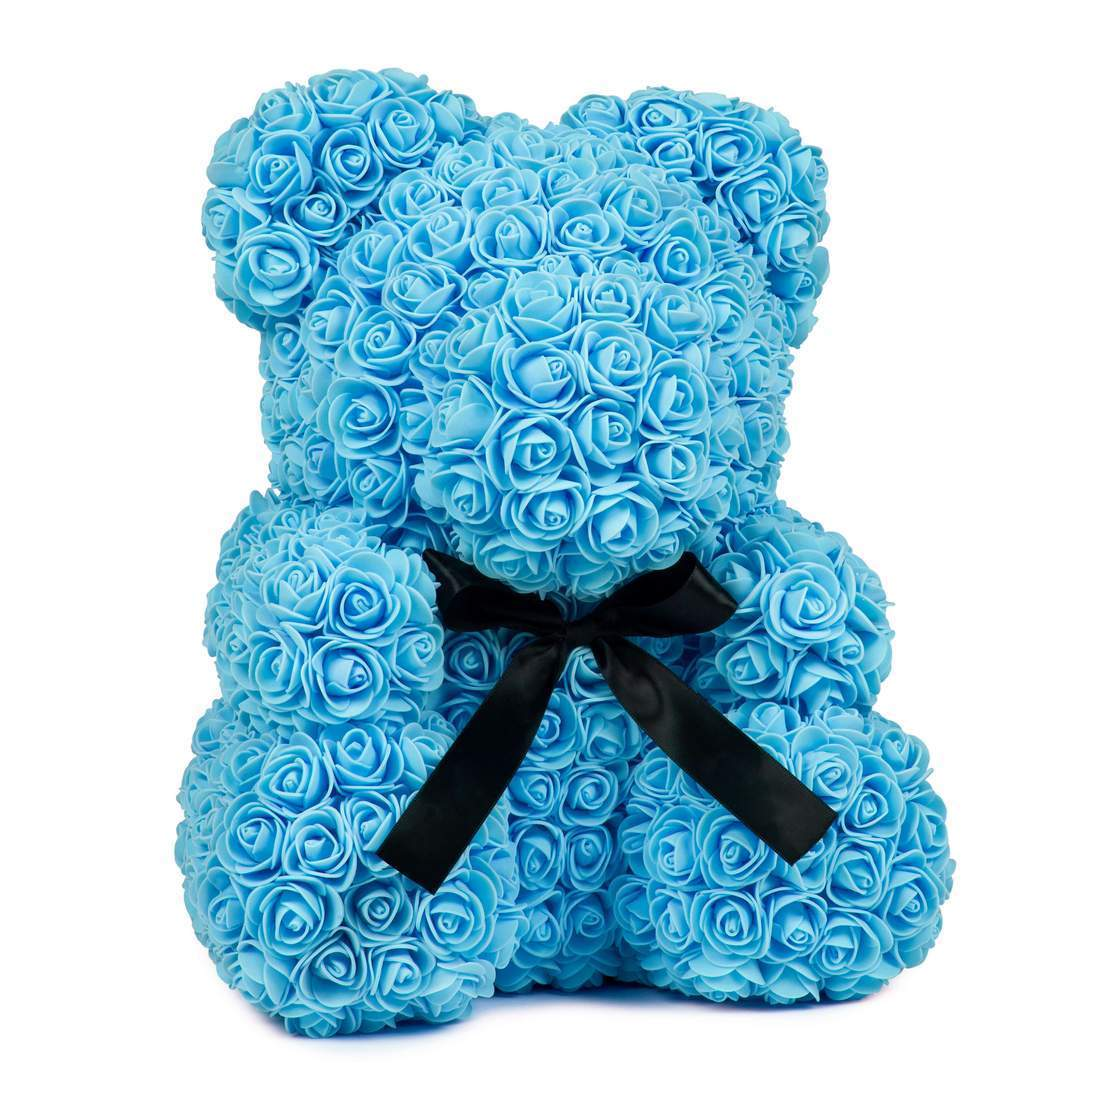 Rose Teddy Bear Blue Large (40cm x 30cm) ClickClickShip.com